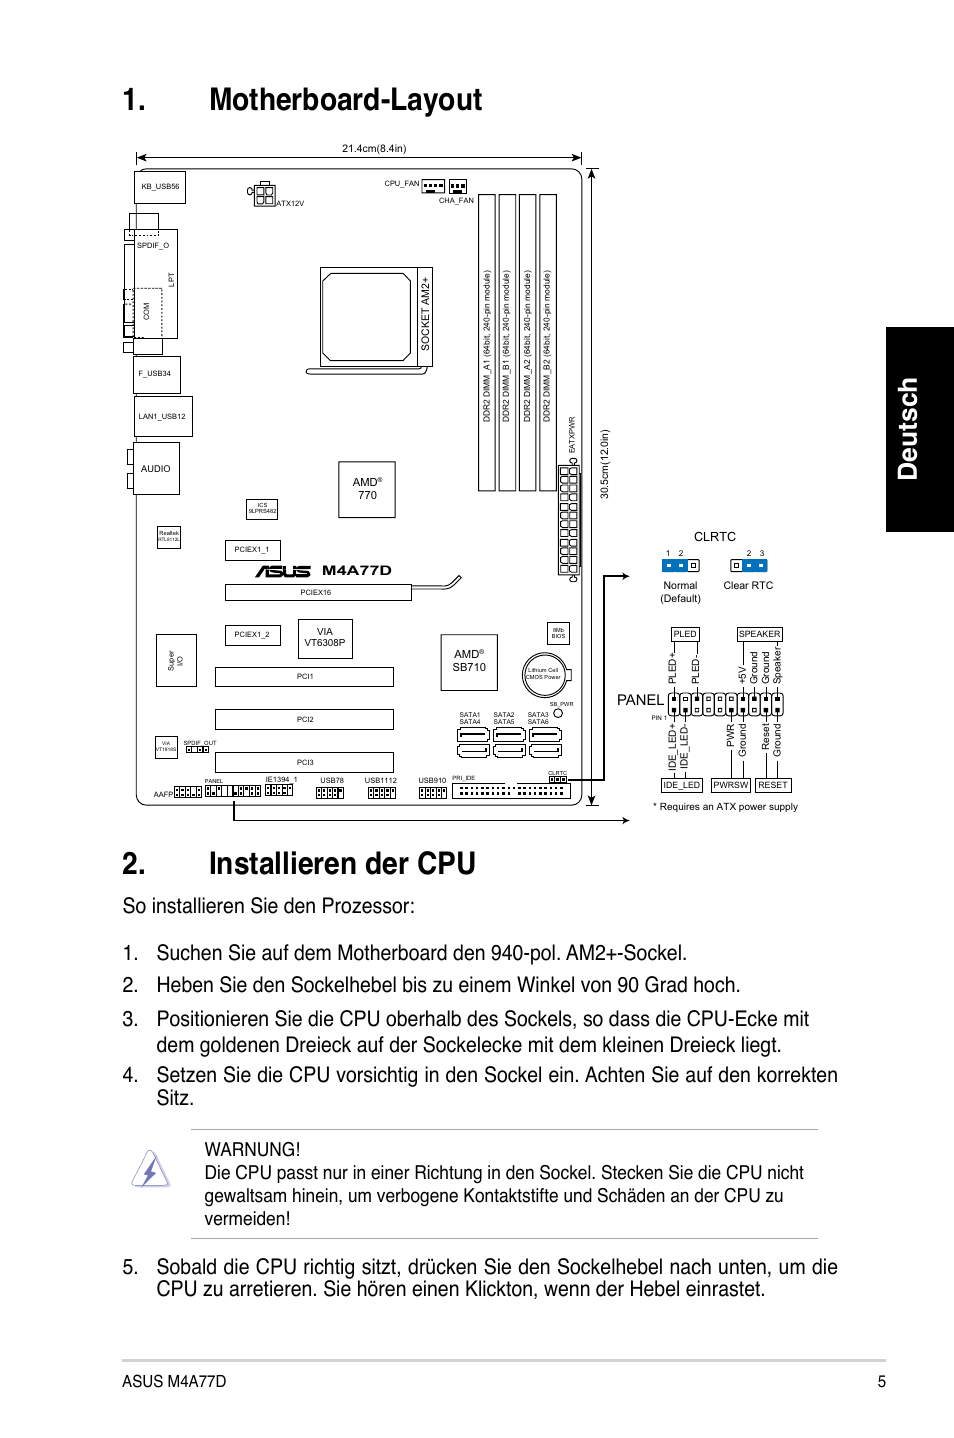 Motherboard Layout 2 Installieren Der Cpu Deutsch Asus M4a77d Diagram Panel